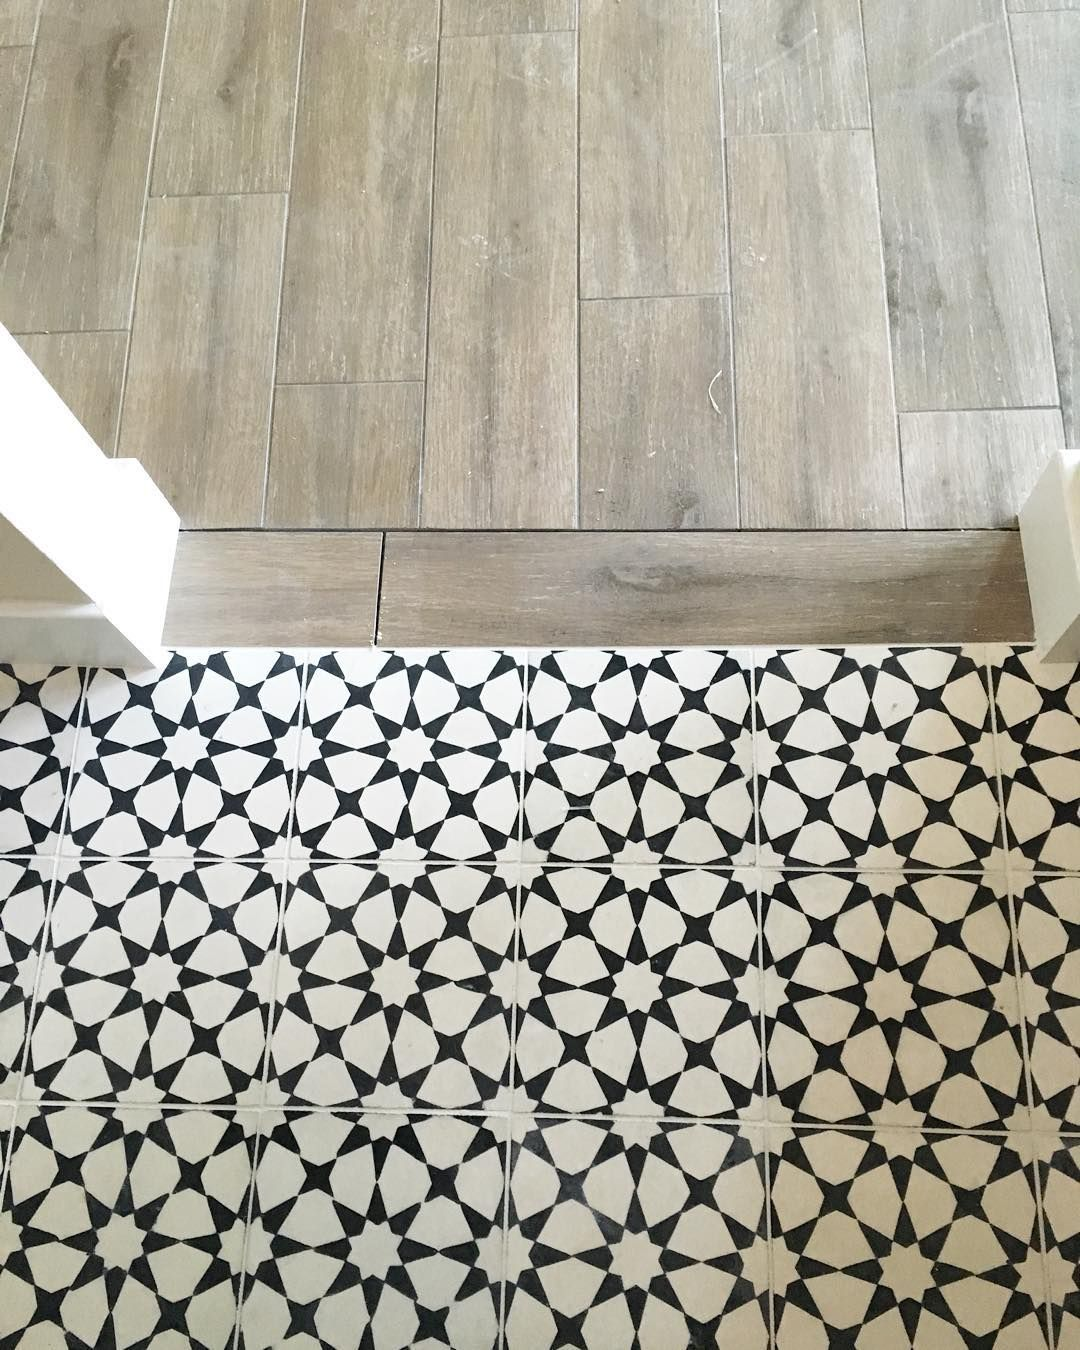 Vanessa matsalla wood to cement tile transition bathroom vanessa matsalla on instagram early morning client updates tile basement floortile floor diyconcrete dailygadgetfo Images